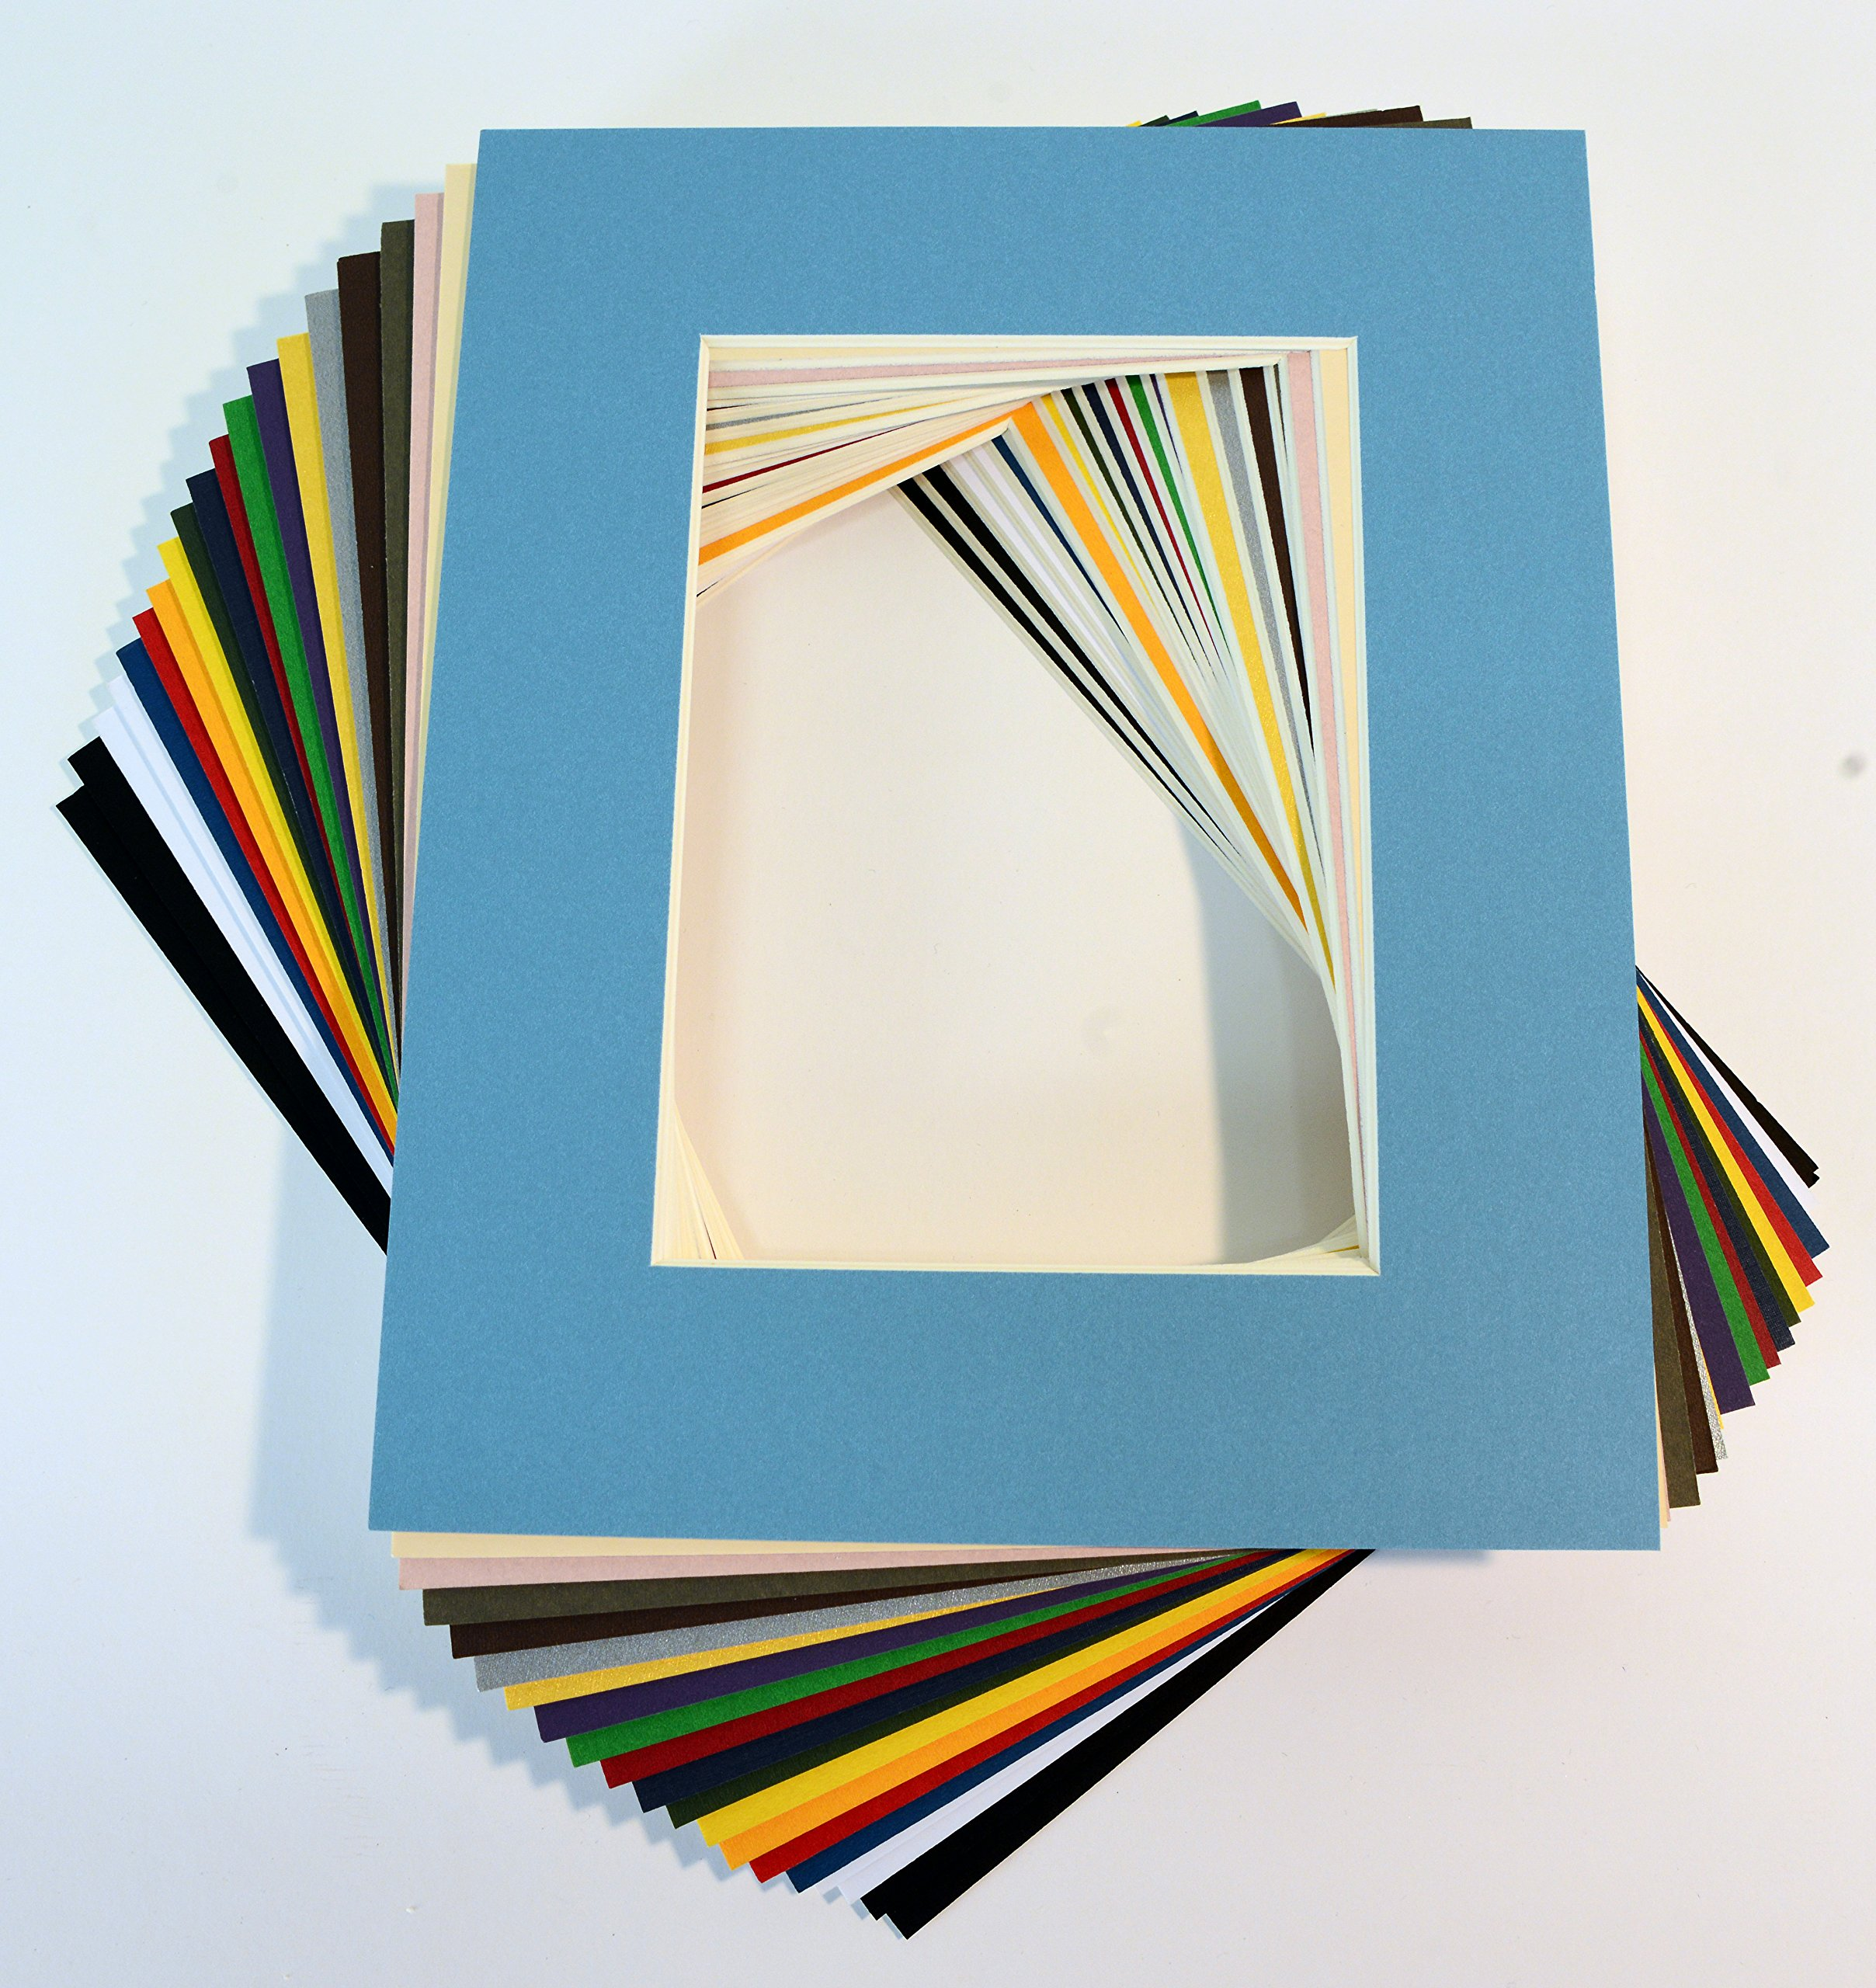 Pack of 20 MIXED COLORS 8x10 Picture Mats Matting with White Core Bevel Cut for 5x7 Pictures by Unknown